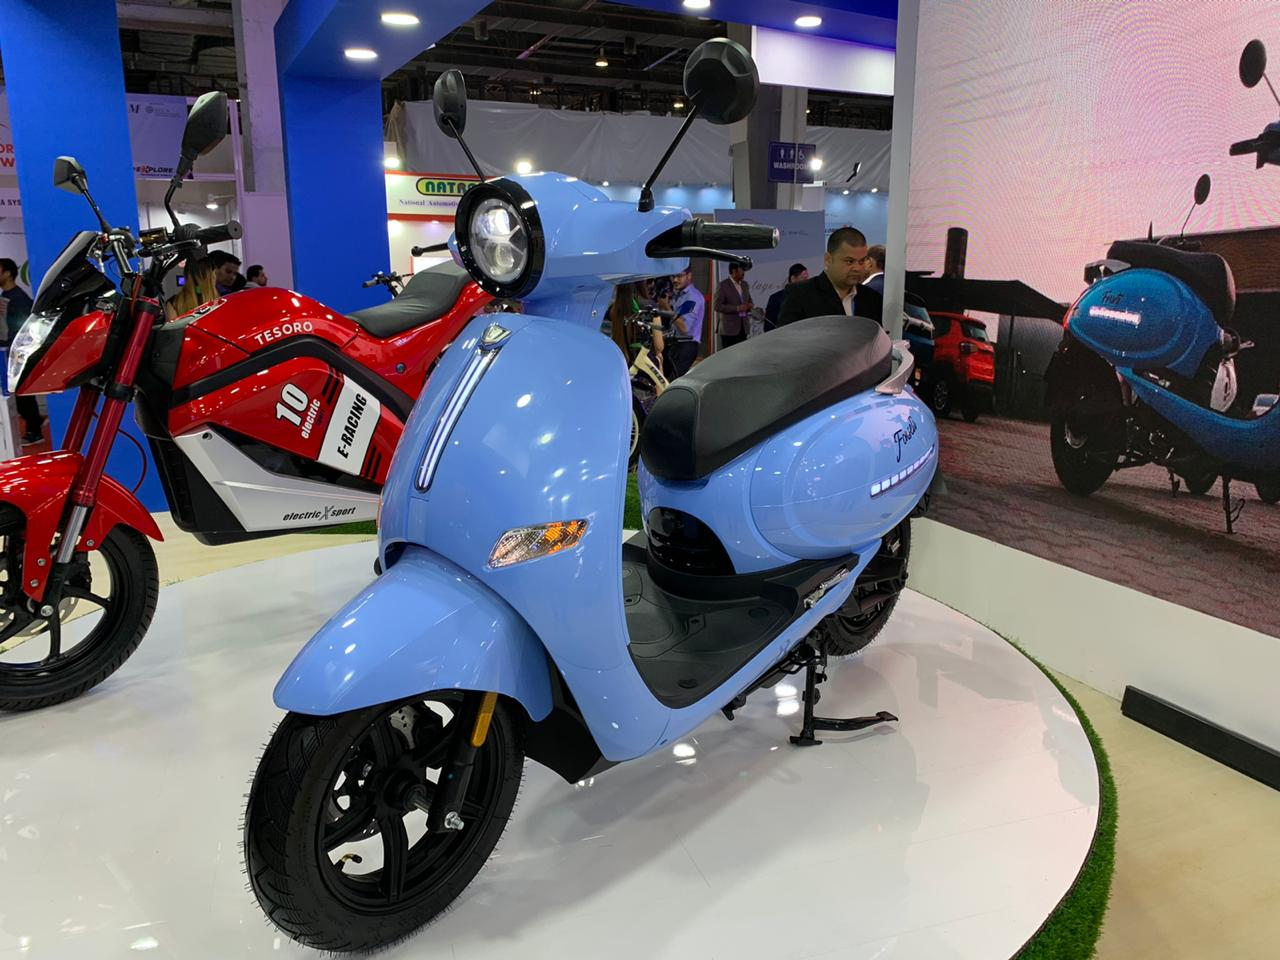 EeVe Forseti front view - Auto expo 2020